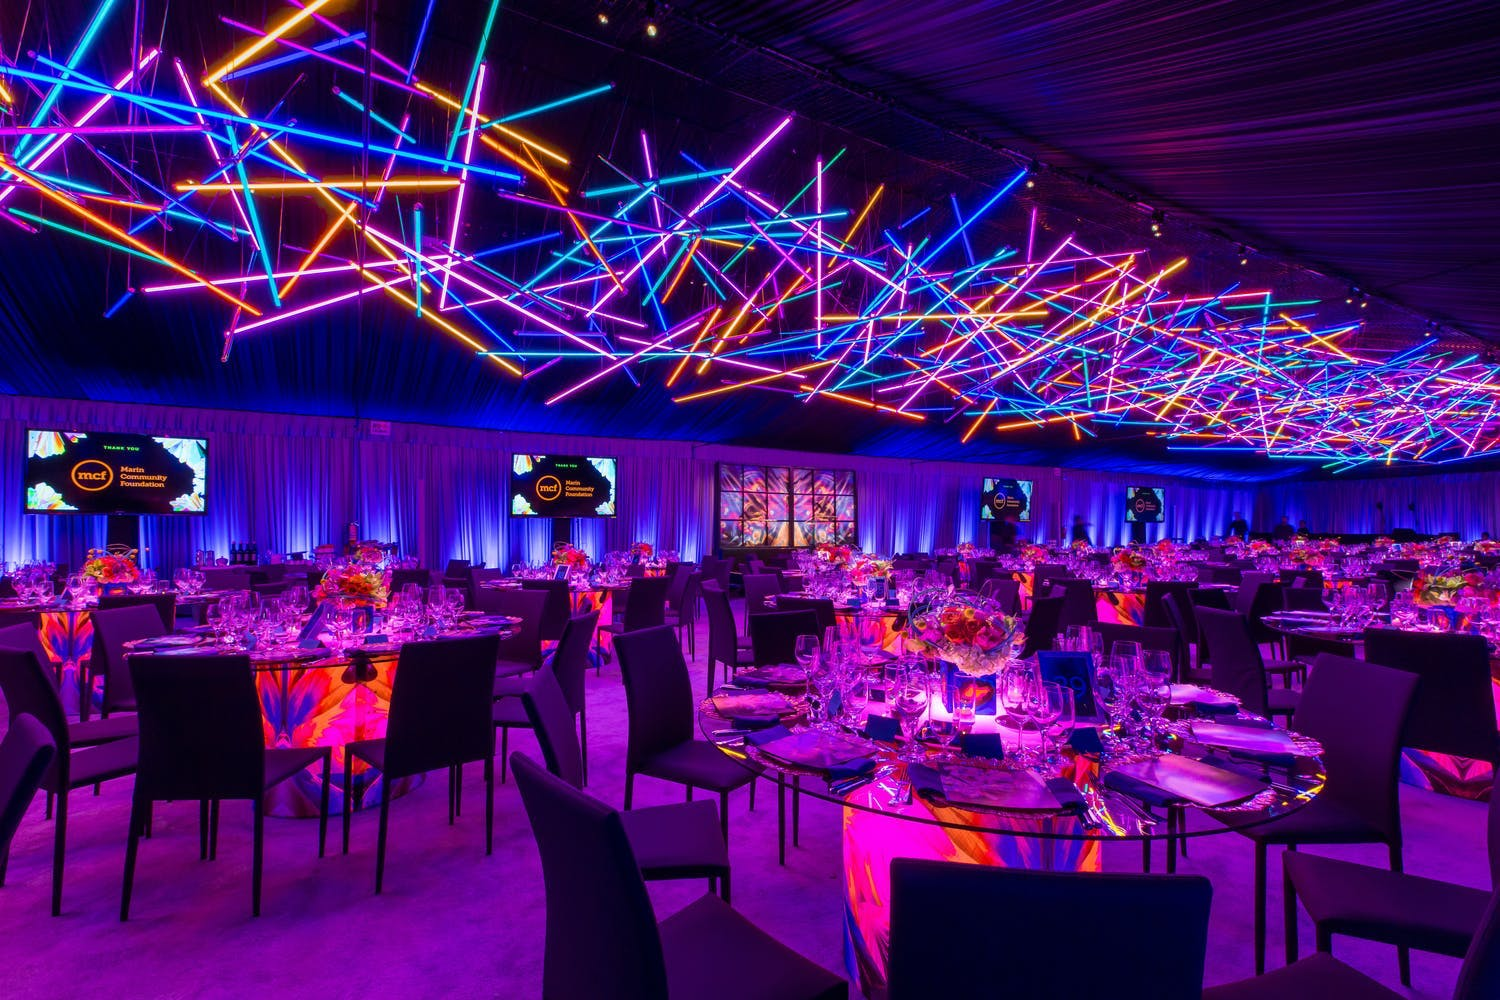 Geometric blue, orange, and pink neon lights ceiling installation at electric gala | PartySlate